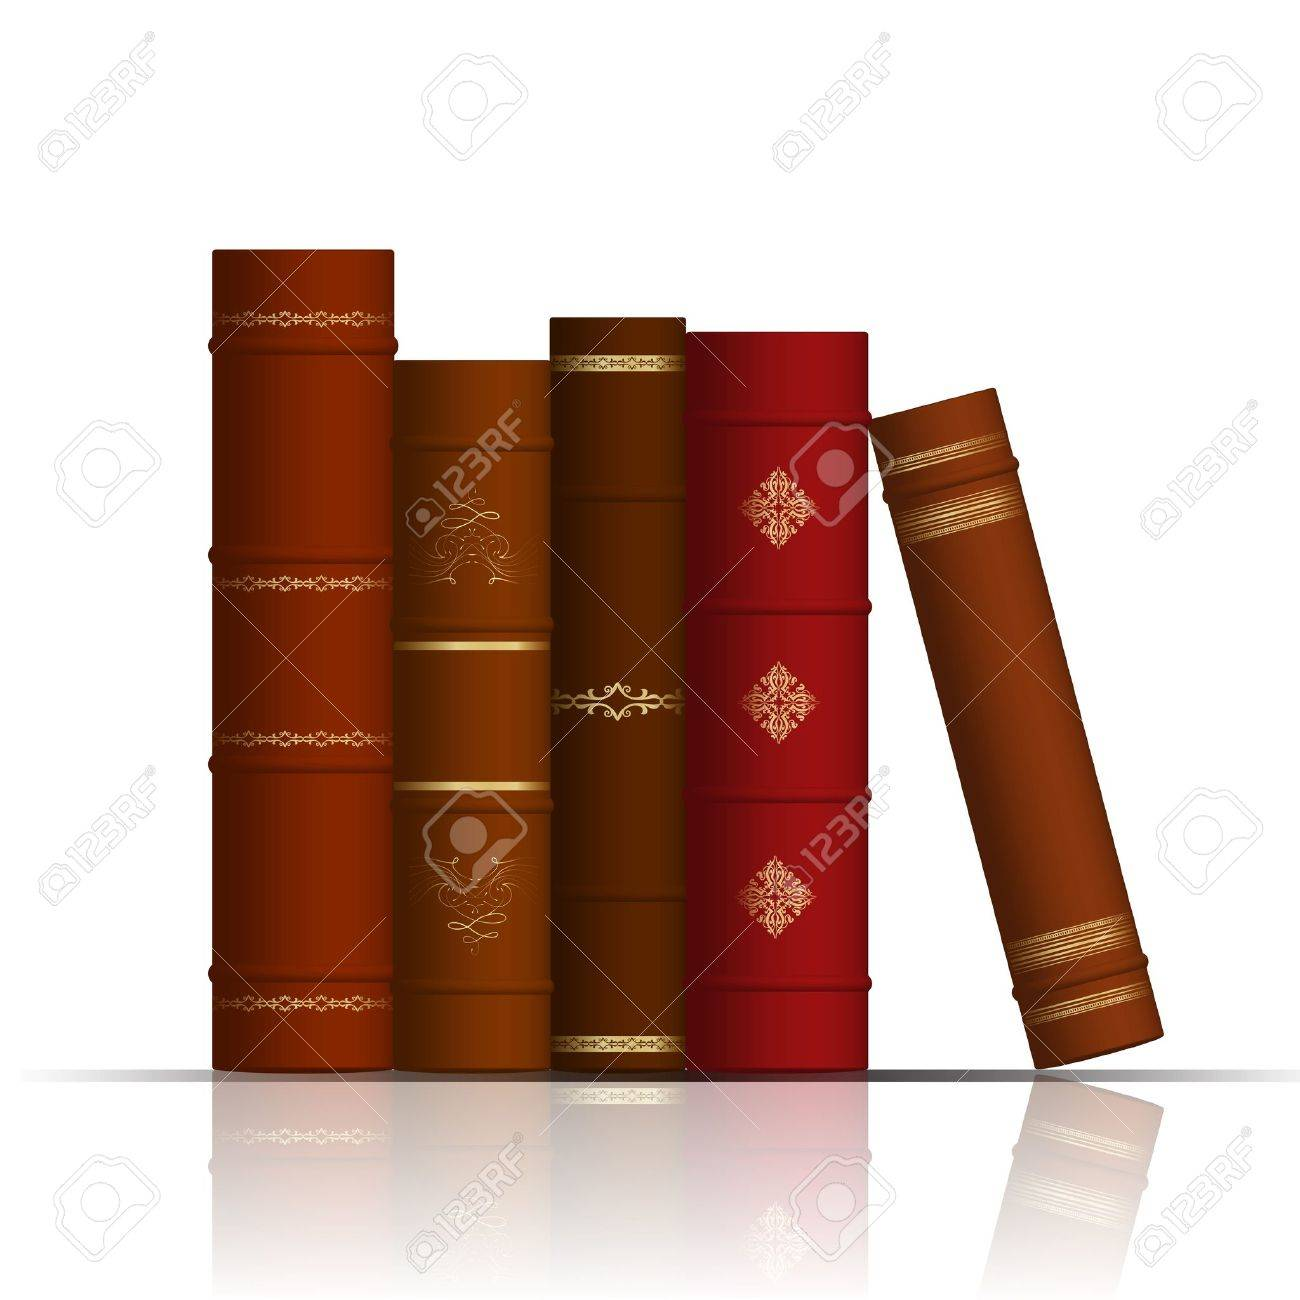 illustration of old books Stock Vector - 12670854